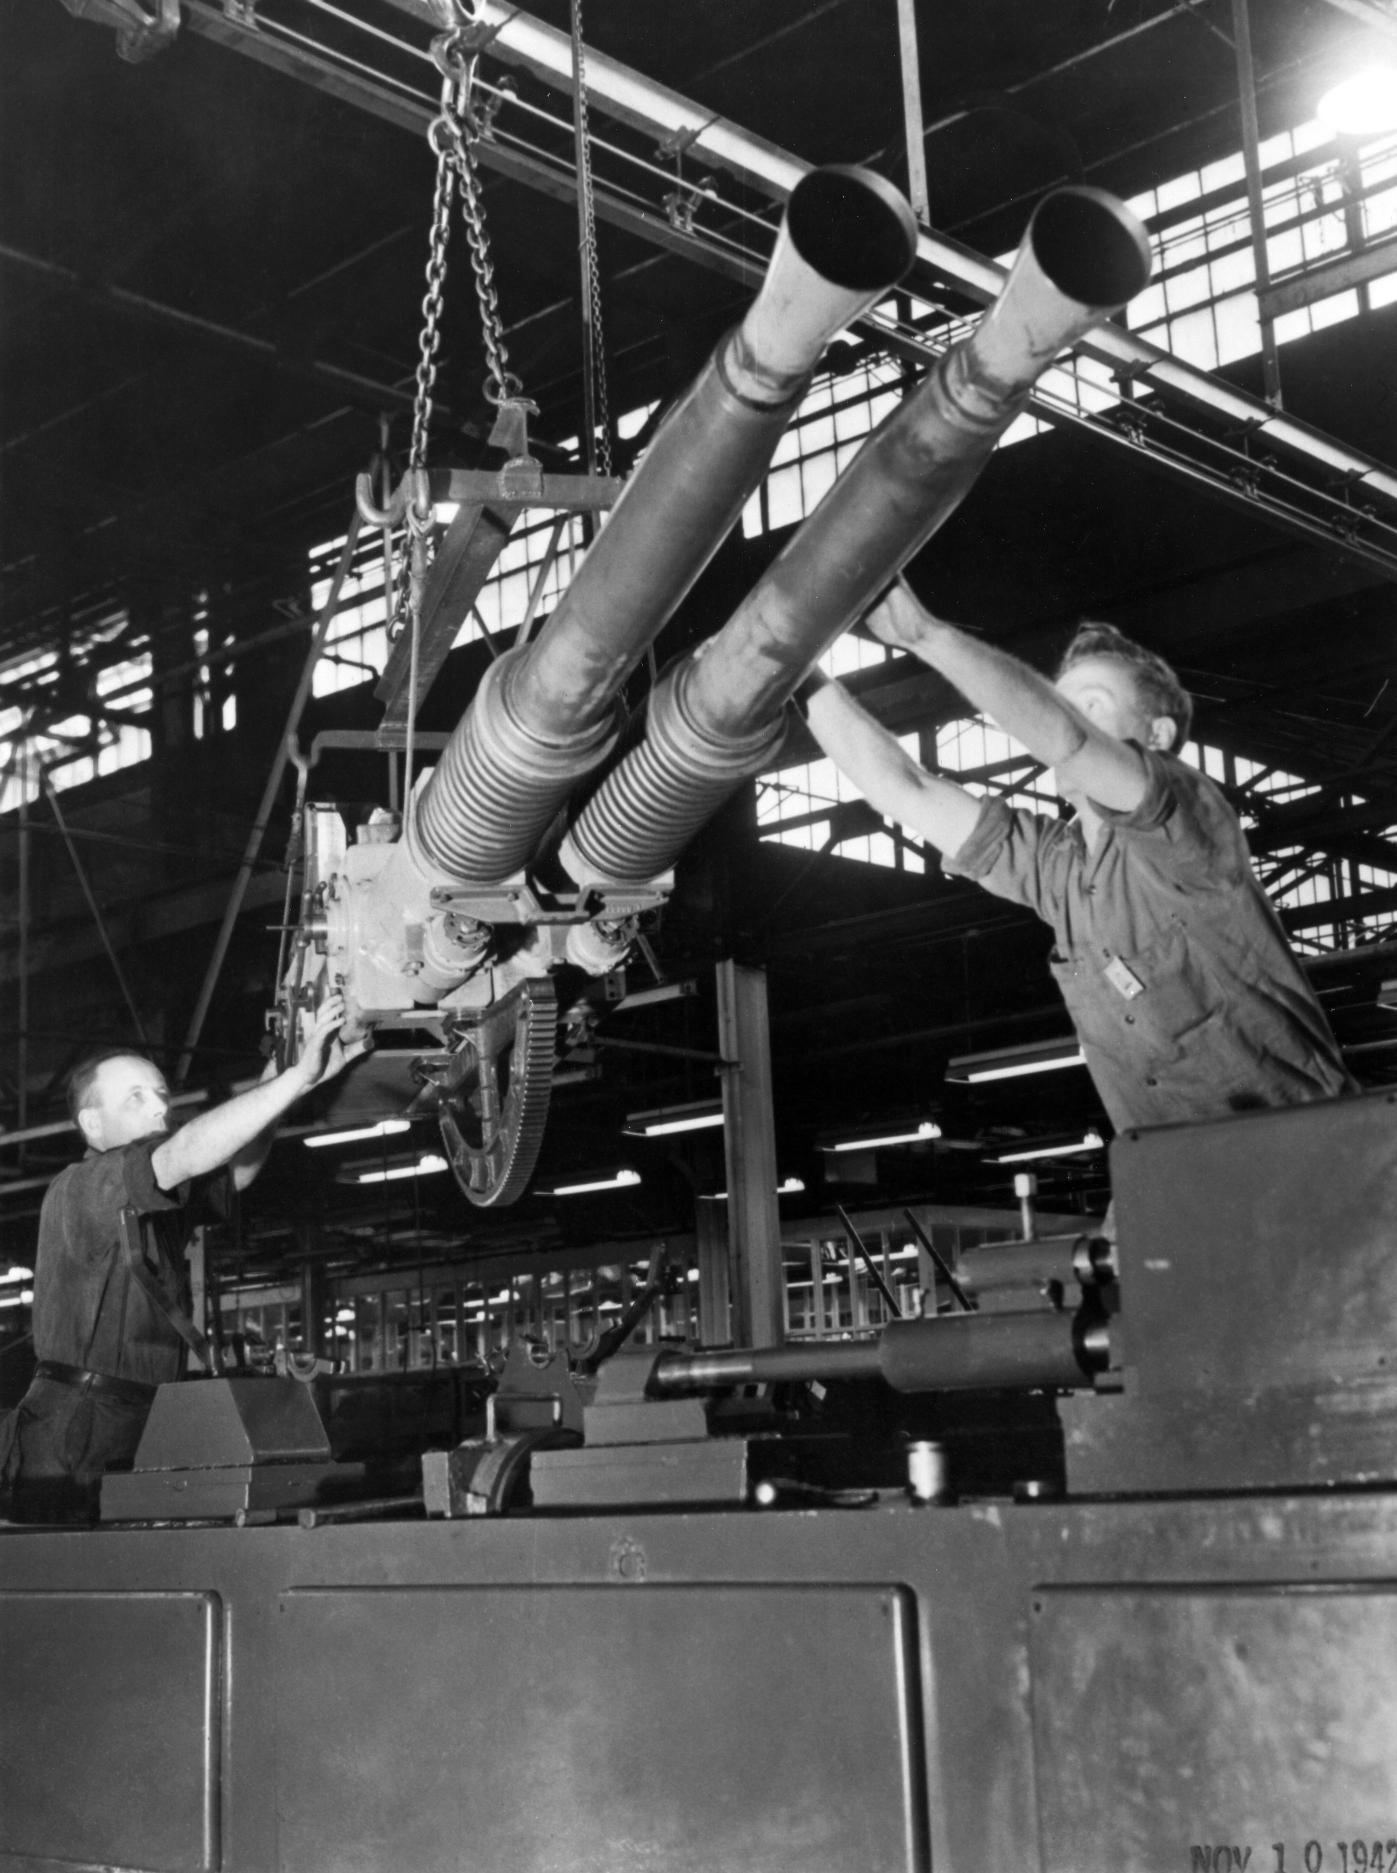 On February 4, 1942, a little more than a year after the original contract award, the first mass-produced Bofors antiaircraft guns came off Chrysler's assembly lines.